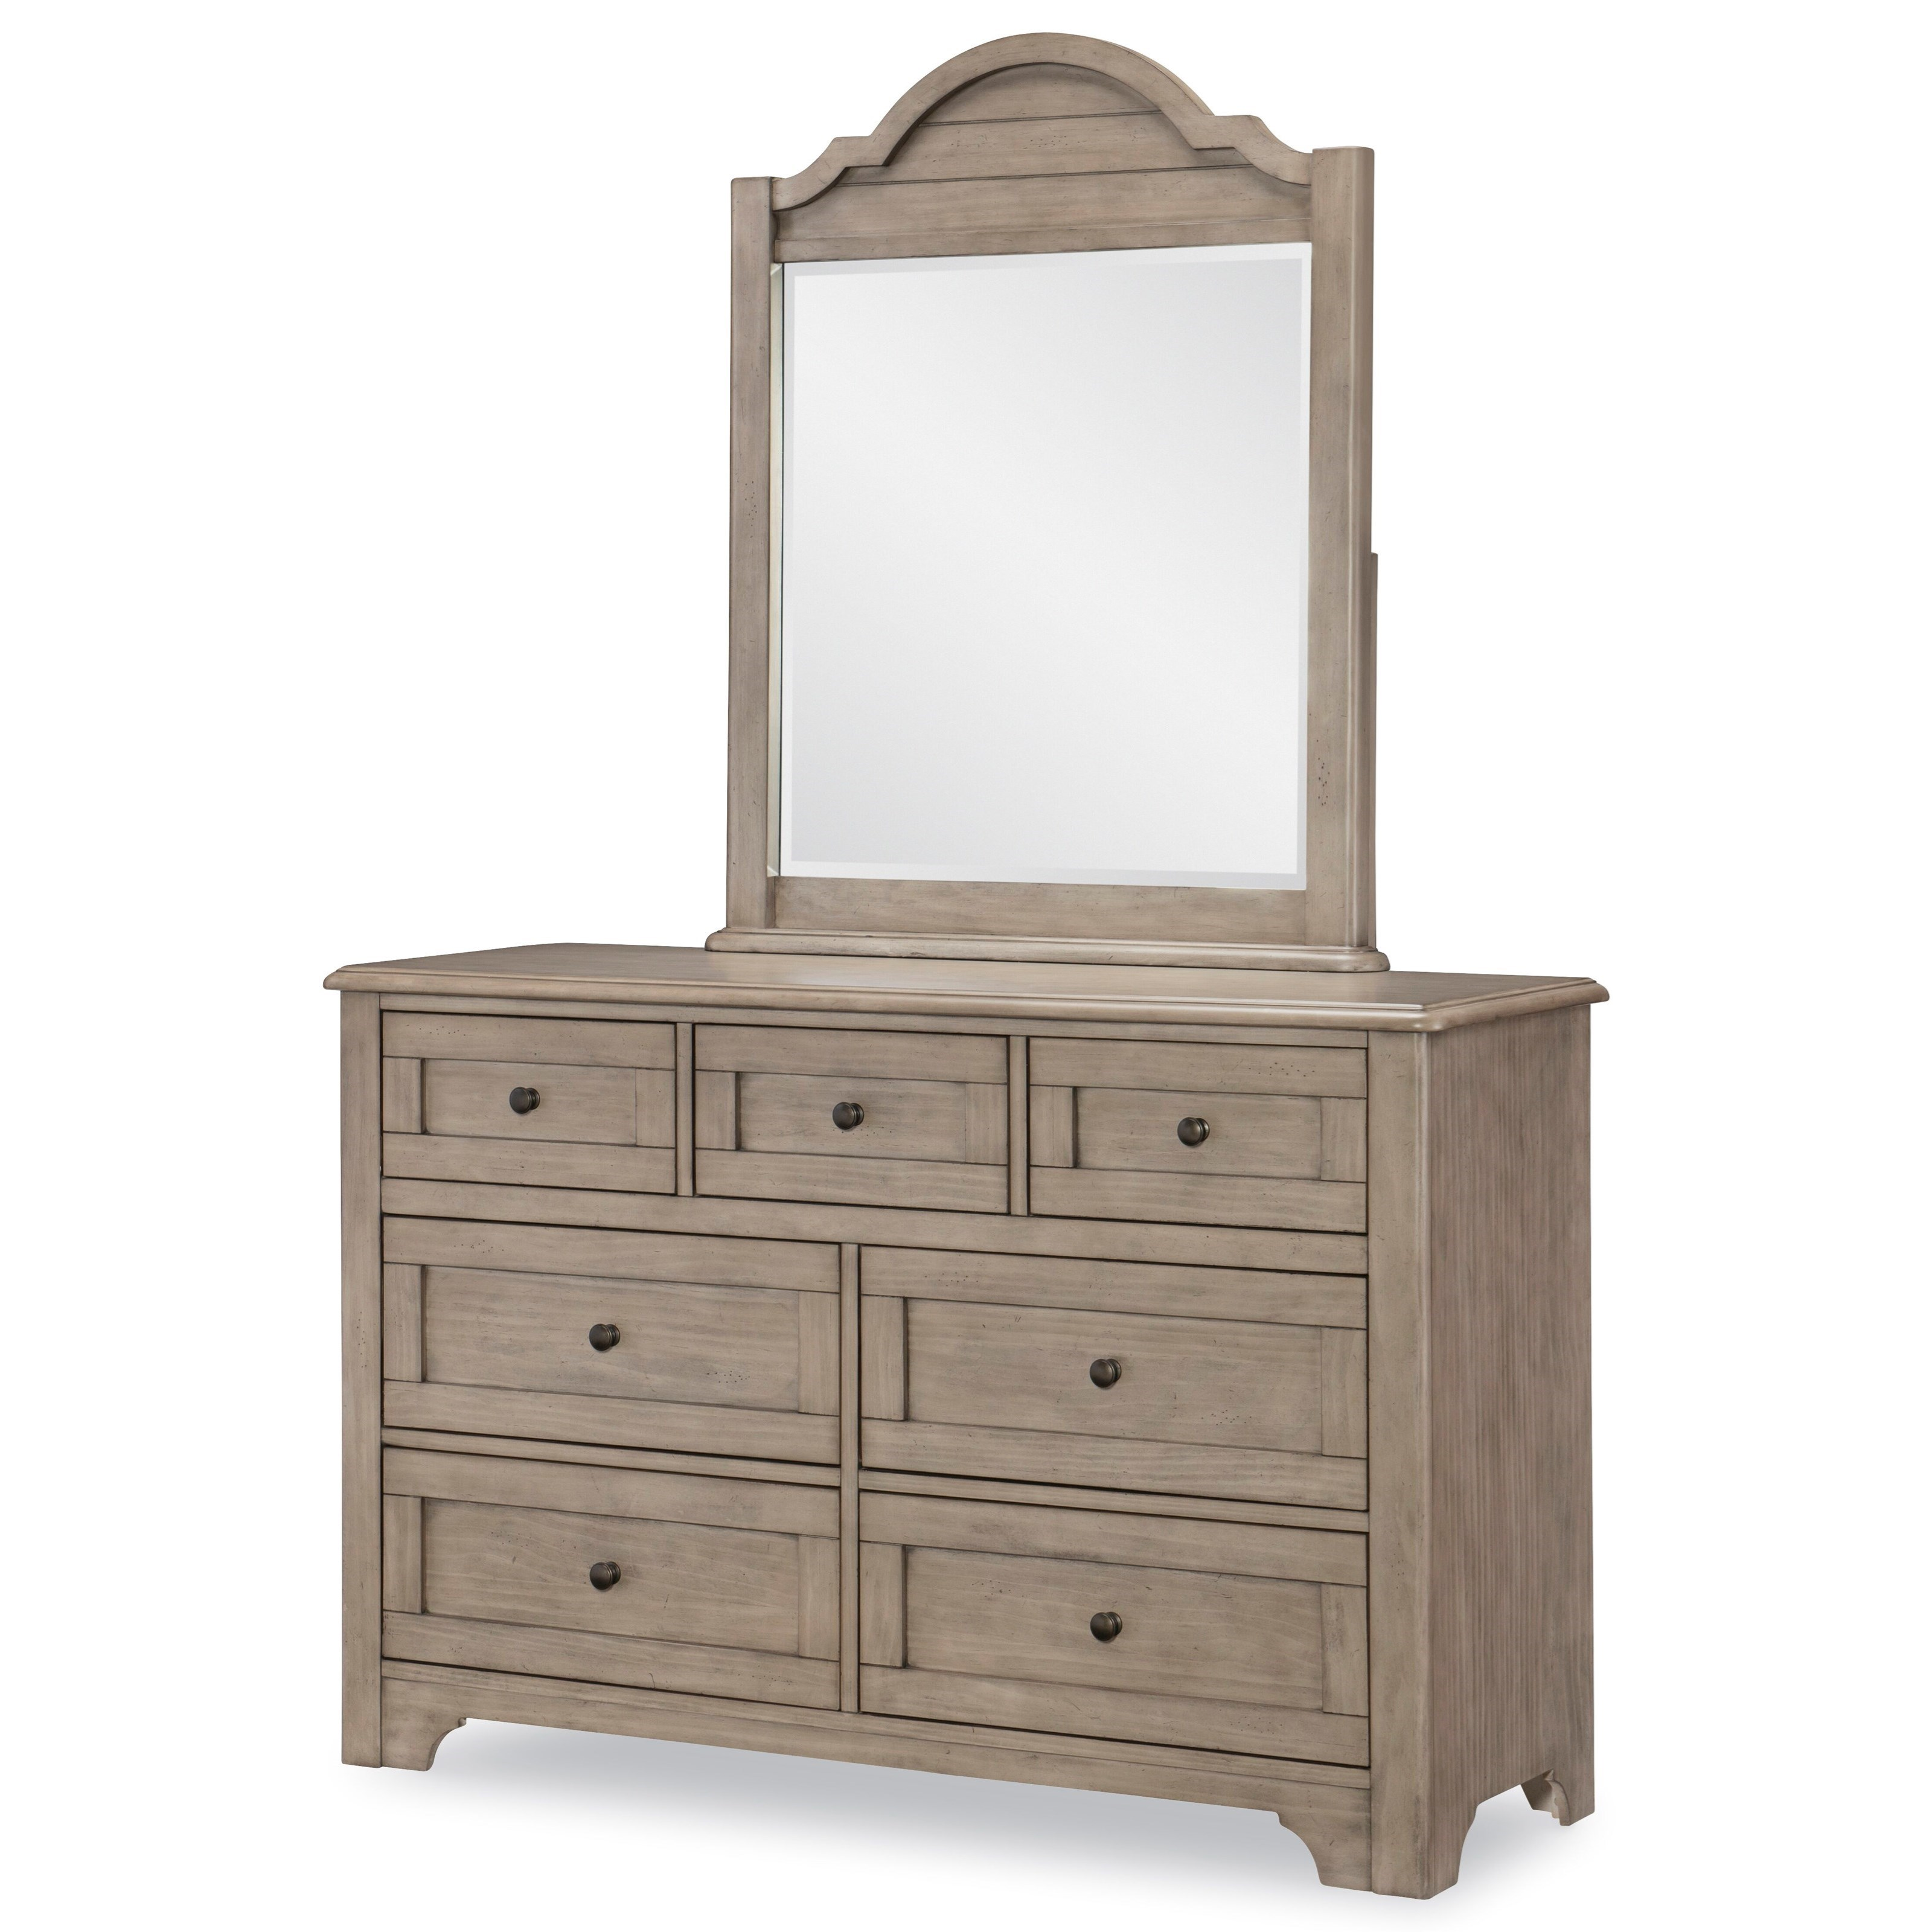 Farm House Dresser and Mirror Set by Legacy Classic Kids at Mueller Furniture